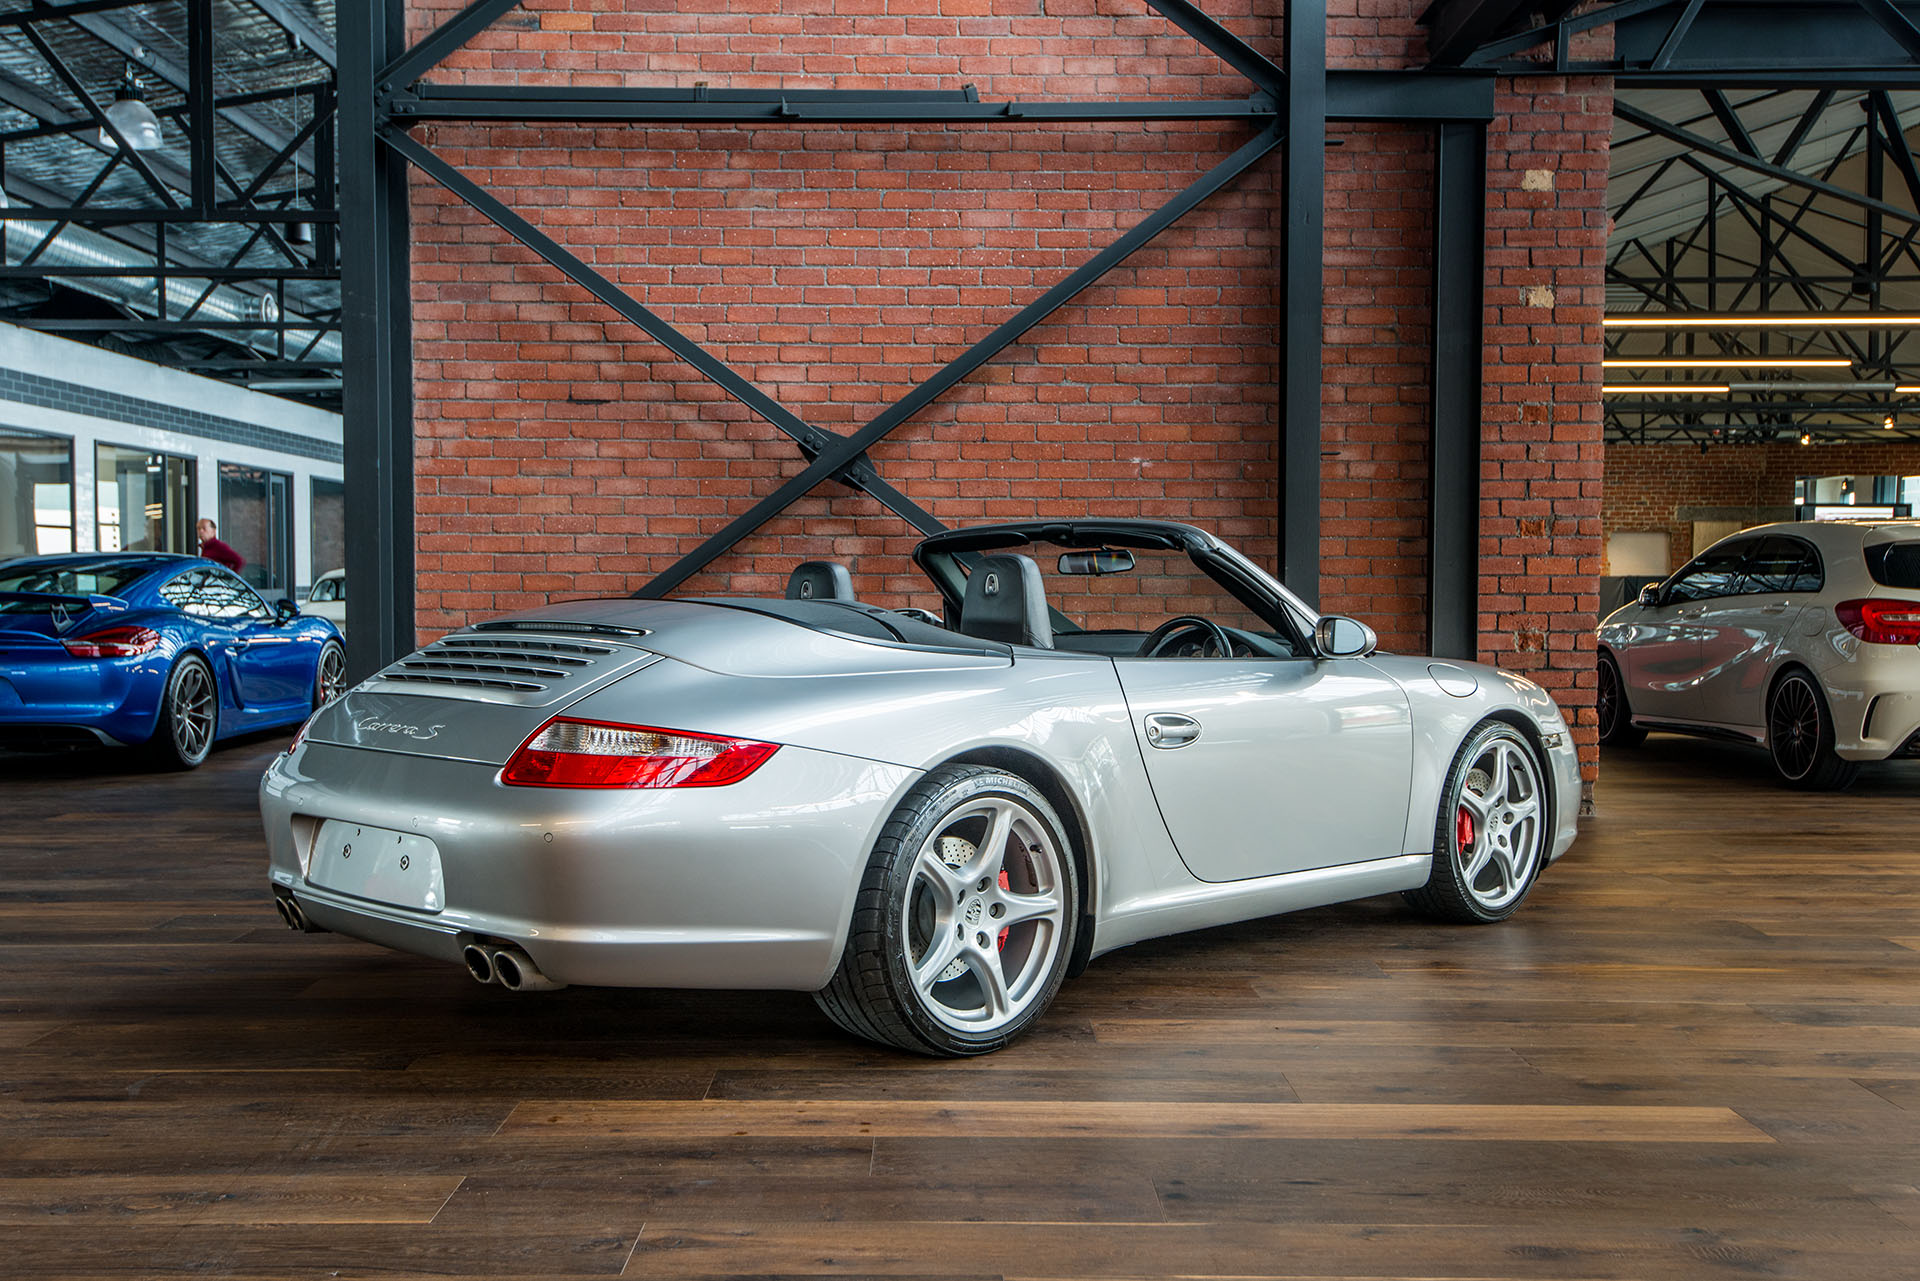 2005 porsche 911 carrera s cabriolet my06 richmonds. Black Bedroom Furniture Sets. Home Design Ideas